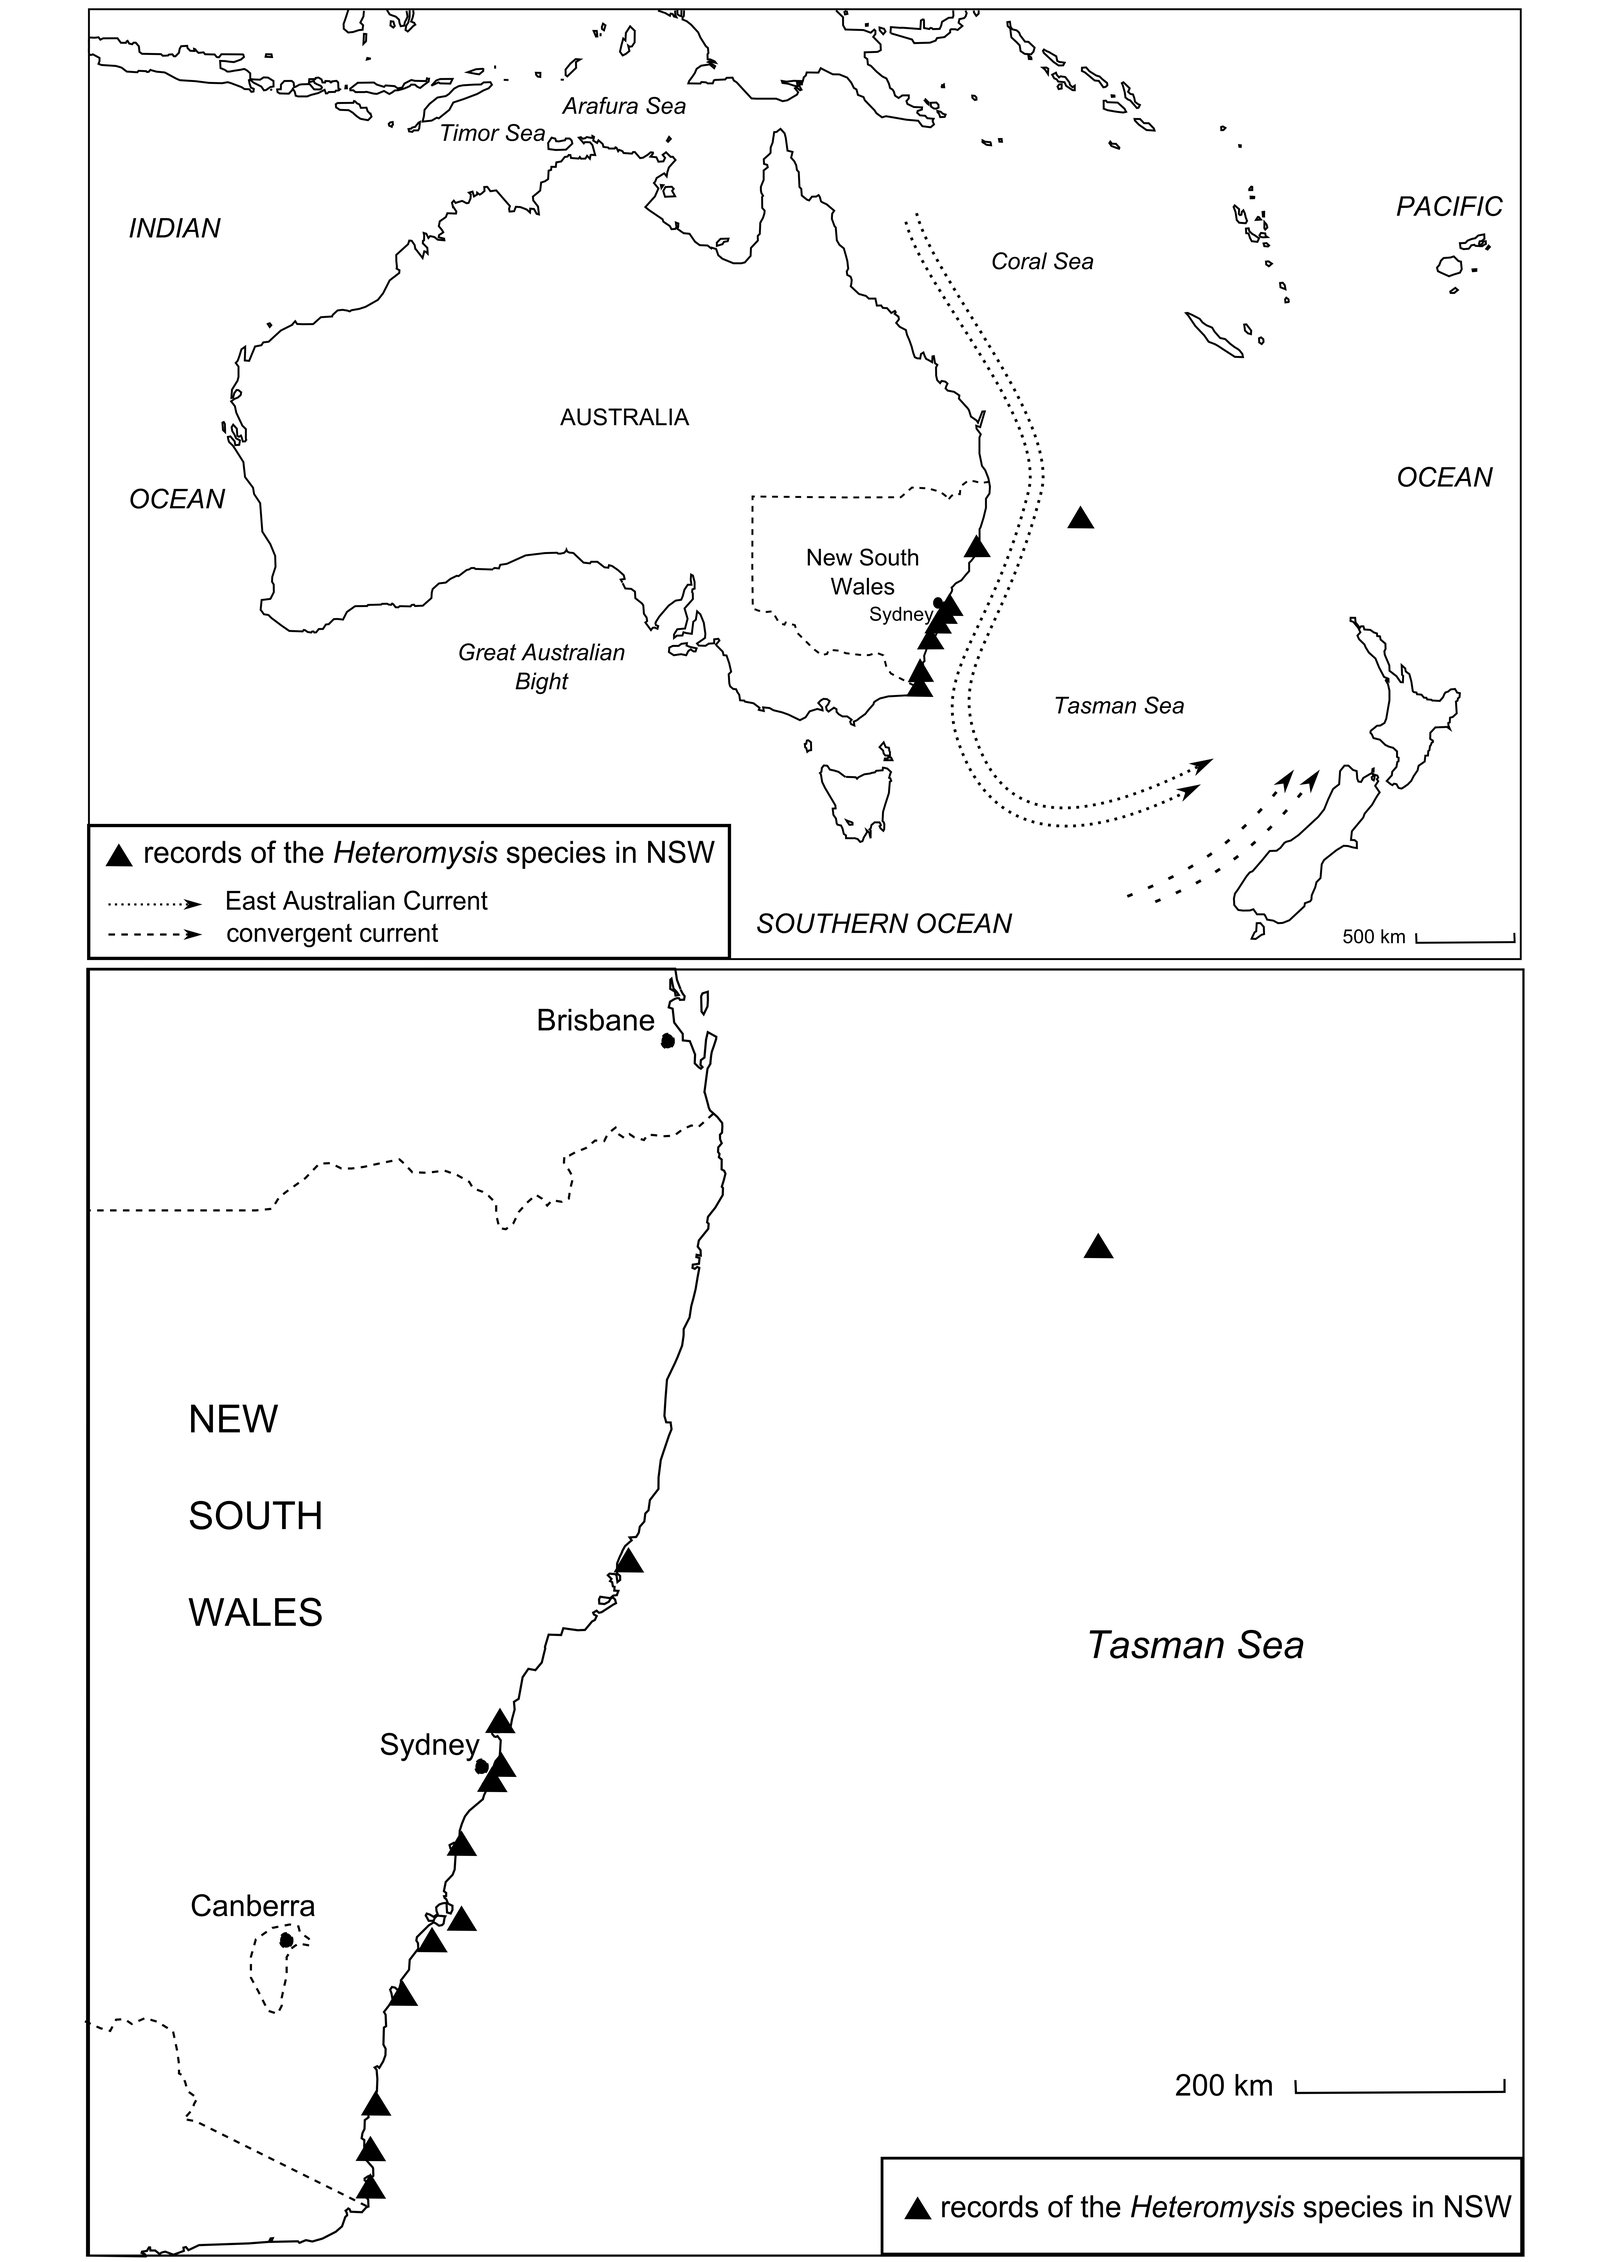 Distribution of Heteromysis species within New South Wales.